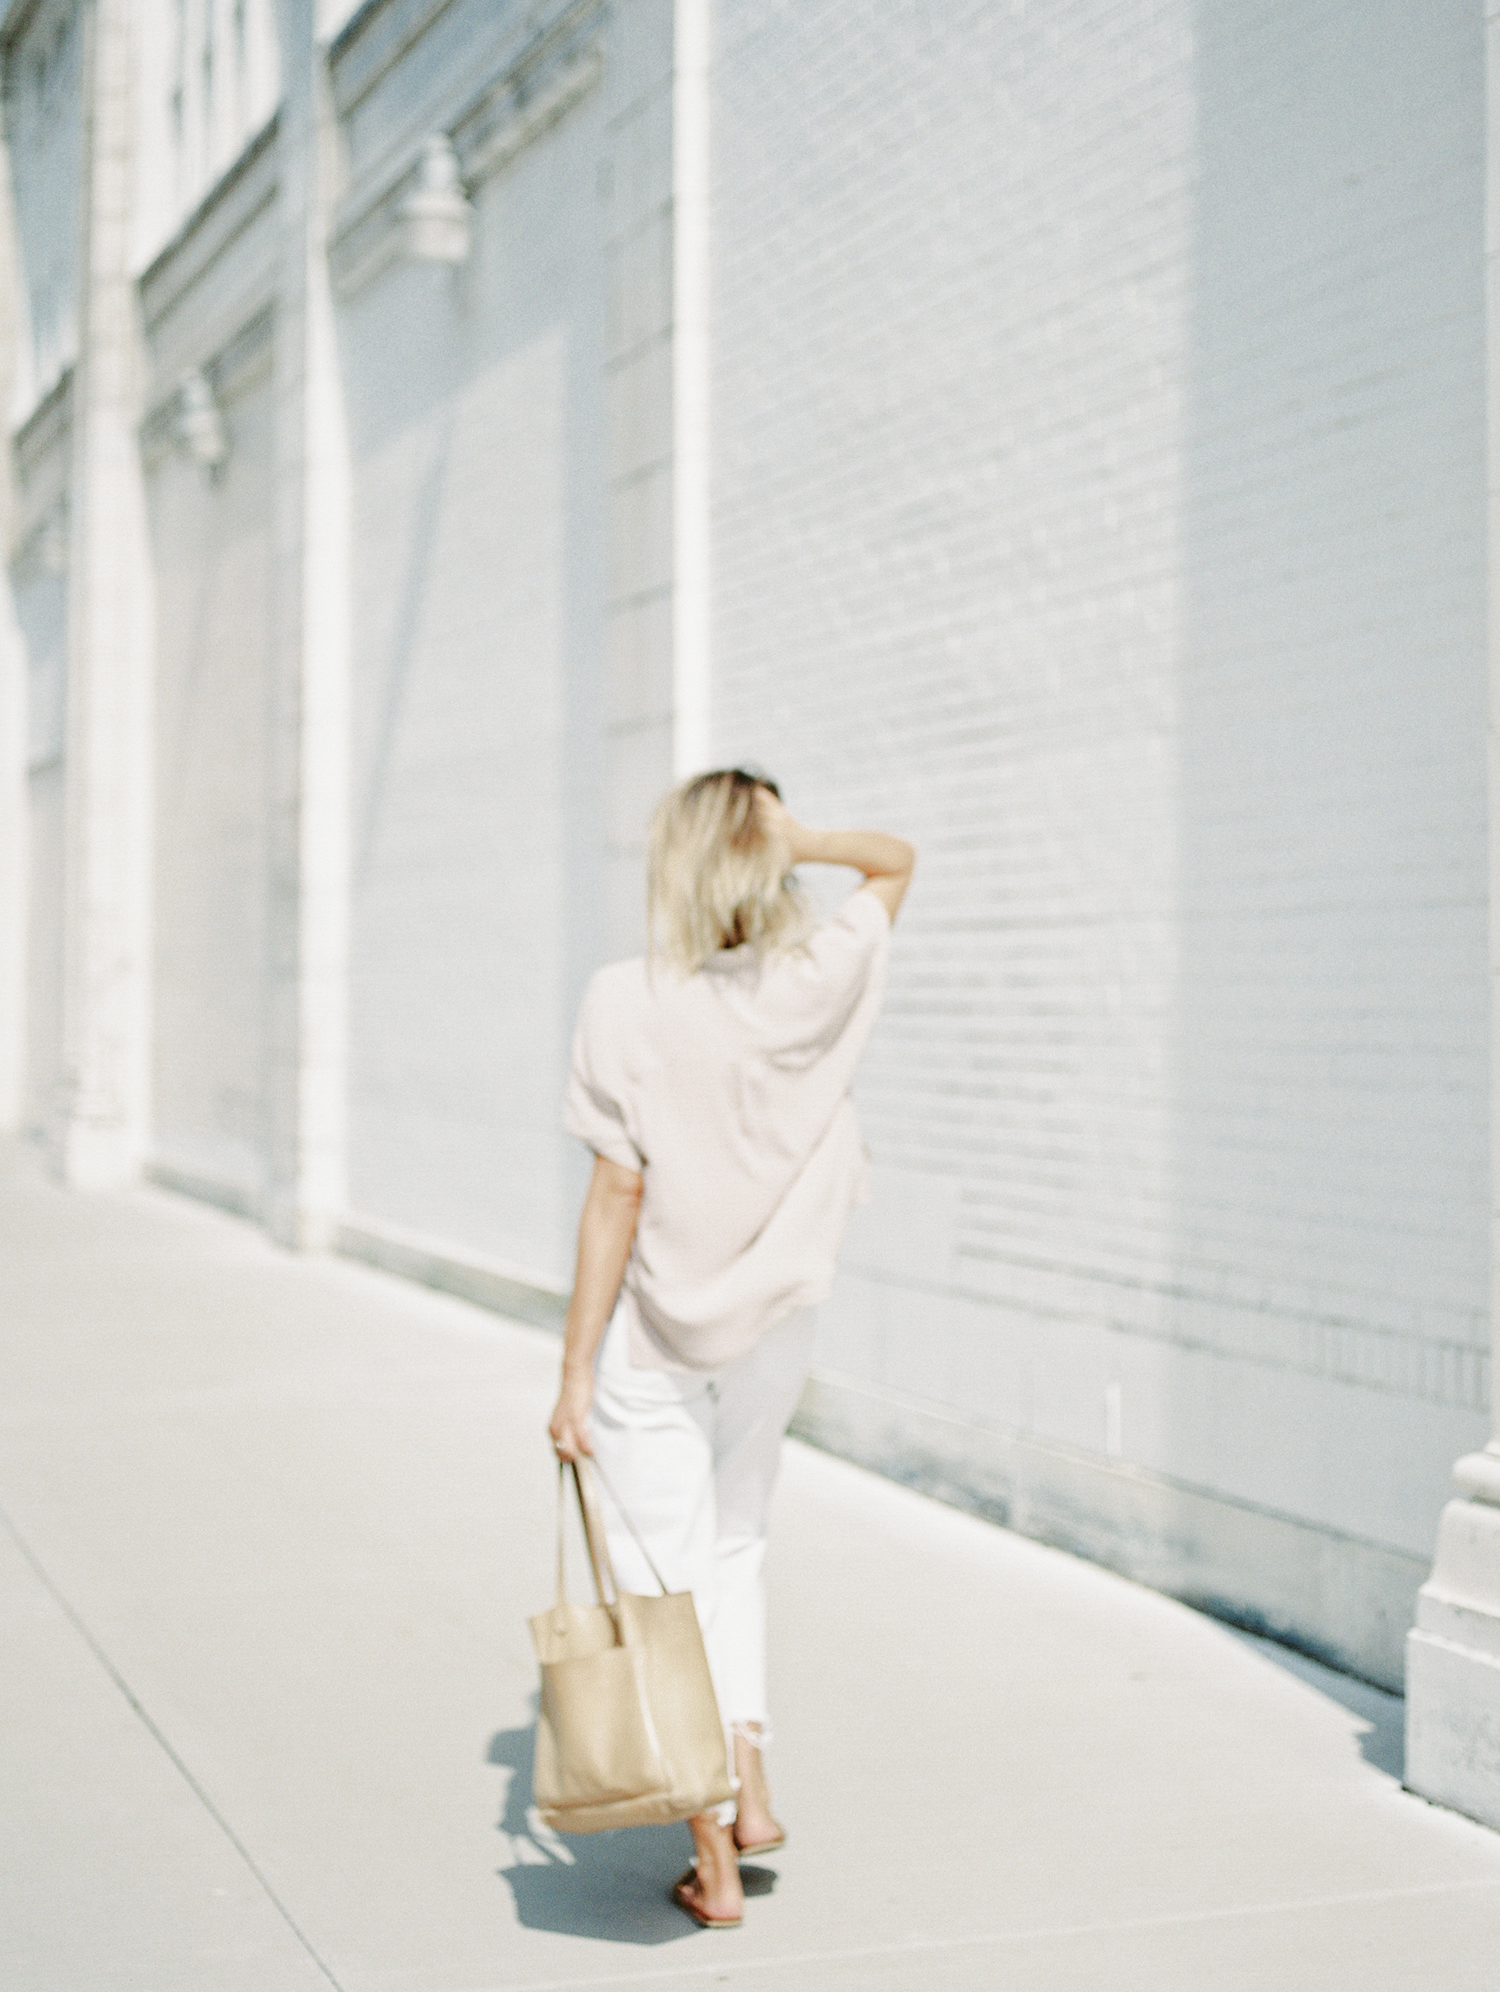 A female entrepreneur and designer casually walks away along a white distressed building in Detroit during her brand photos